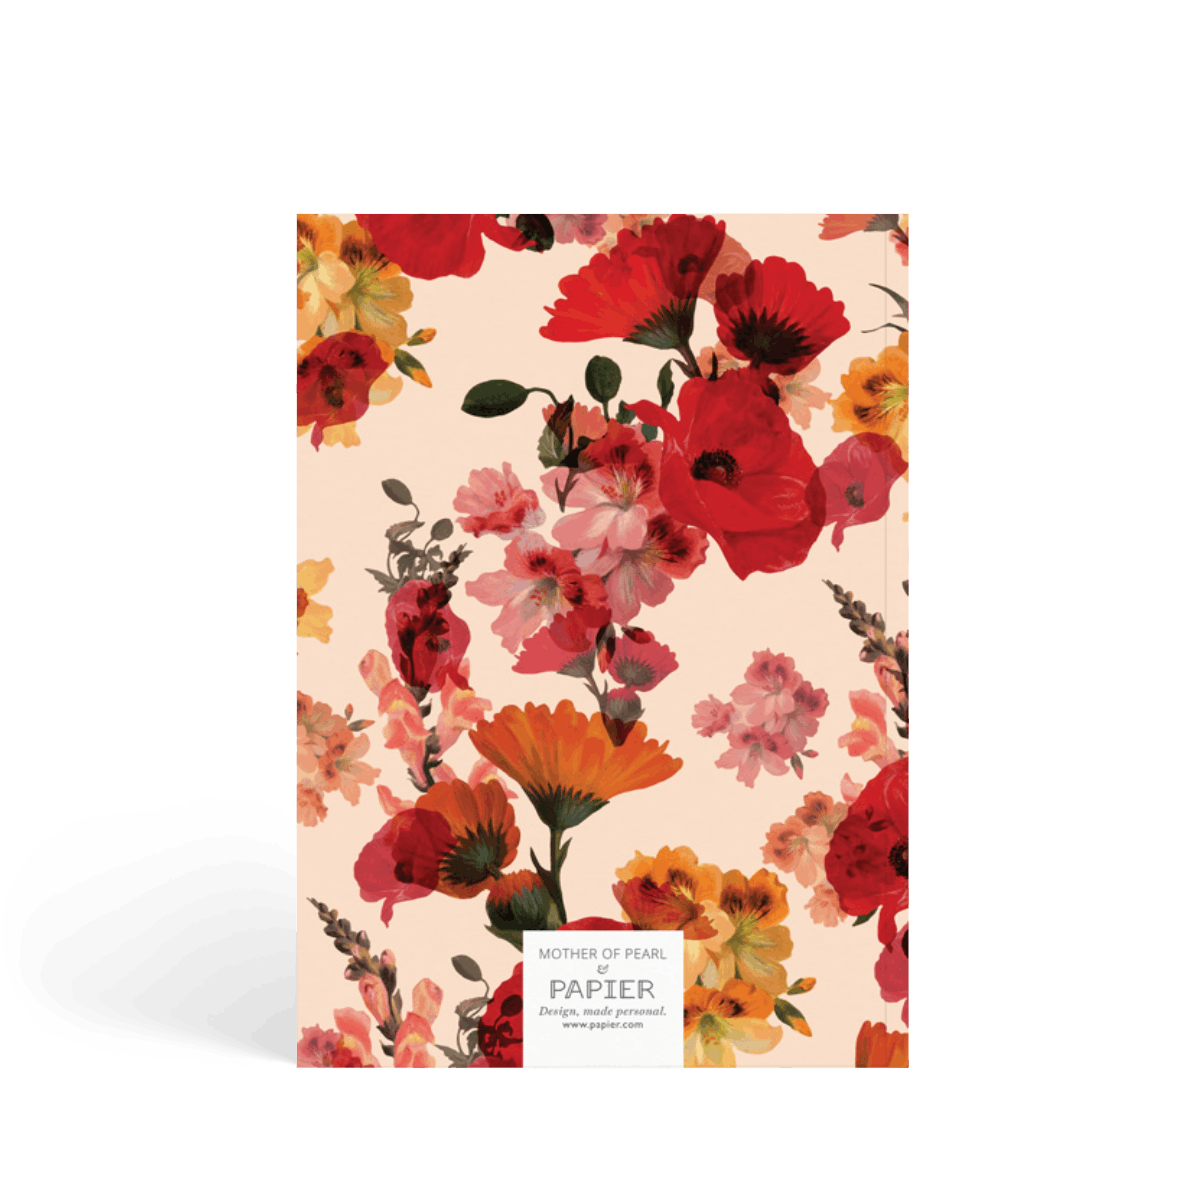 Https%3a%2f%2fwww.papier.com%2fproduct image%2f45333%2f5%2fcordelia floral 11243 rueckseite 1535021390.png?ixlib=rb 1.1